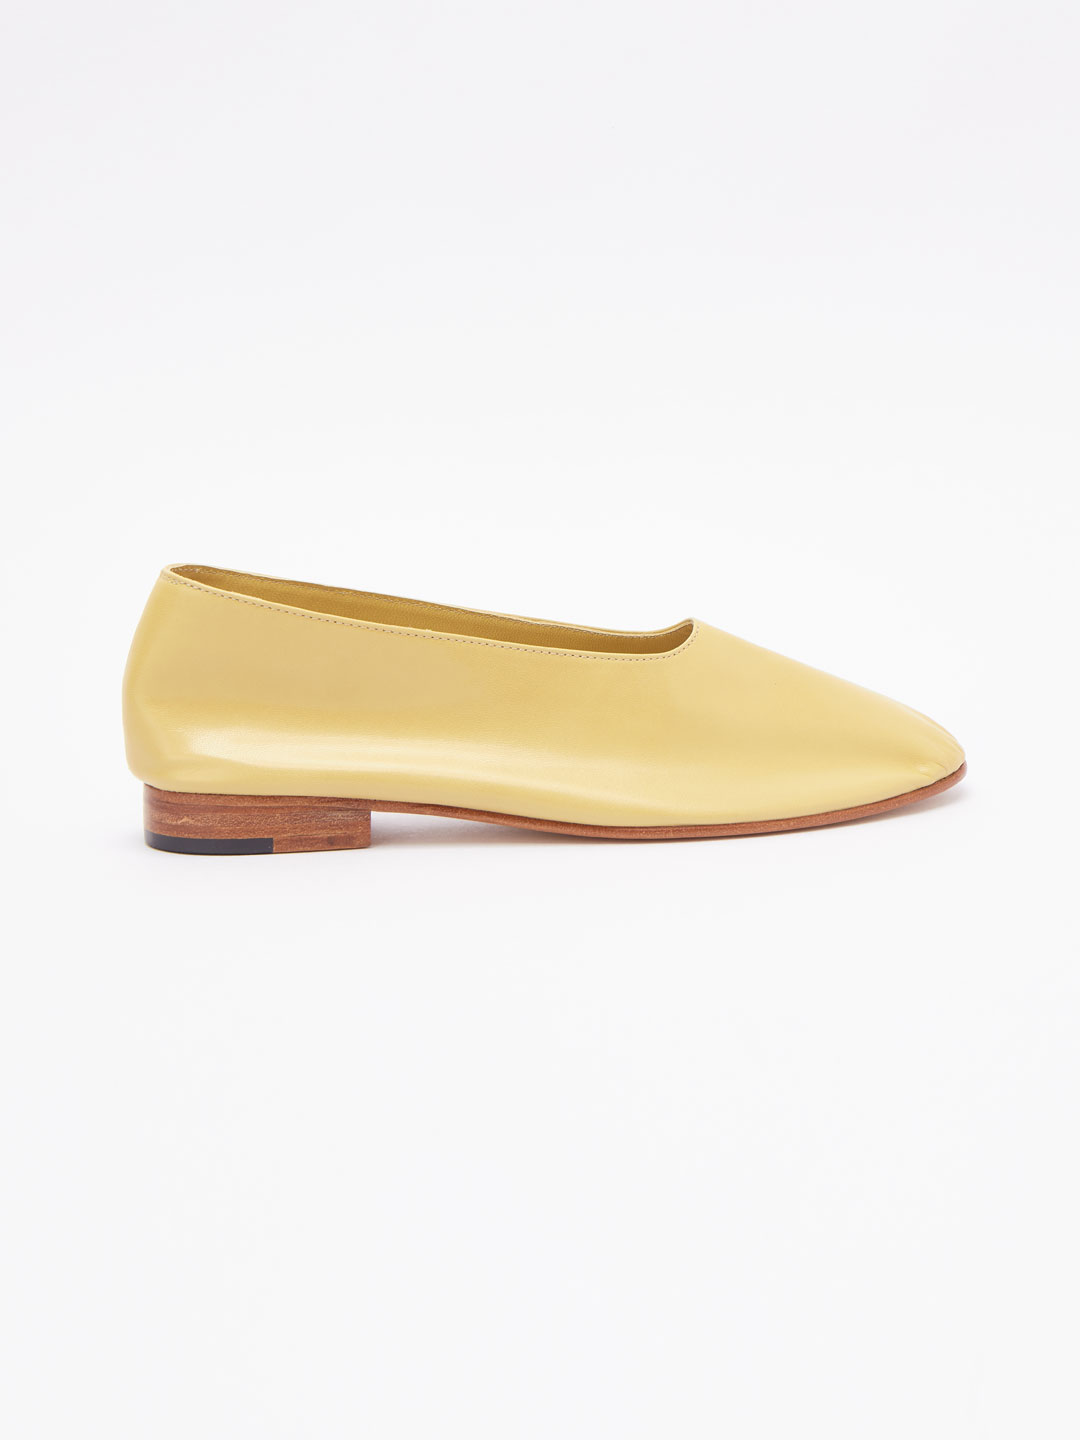 Glove Flat Shoes - Beige